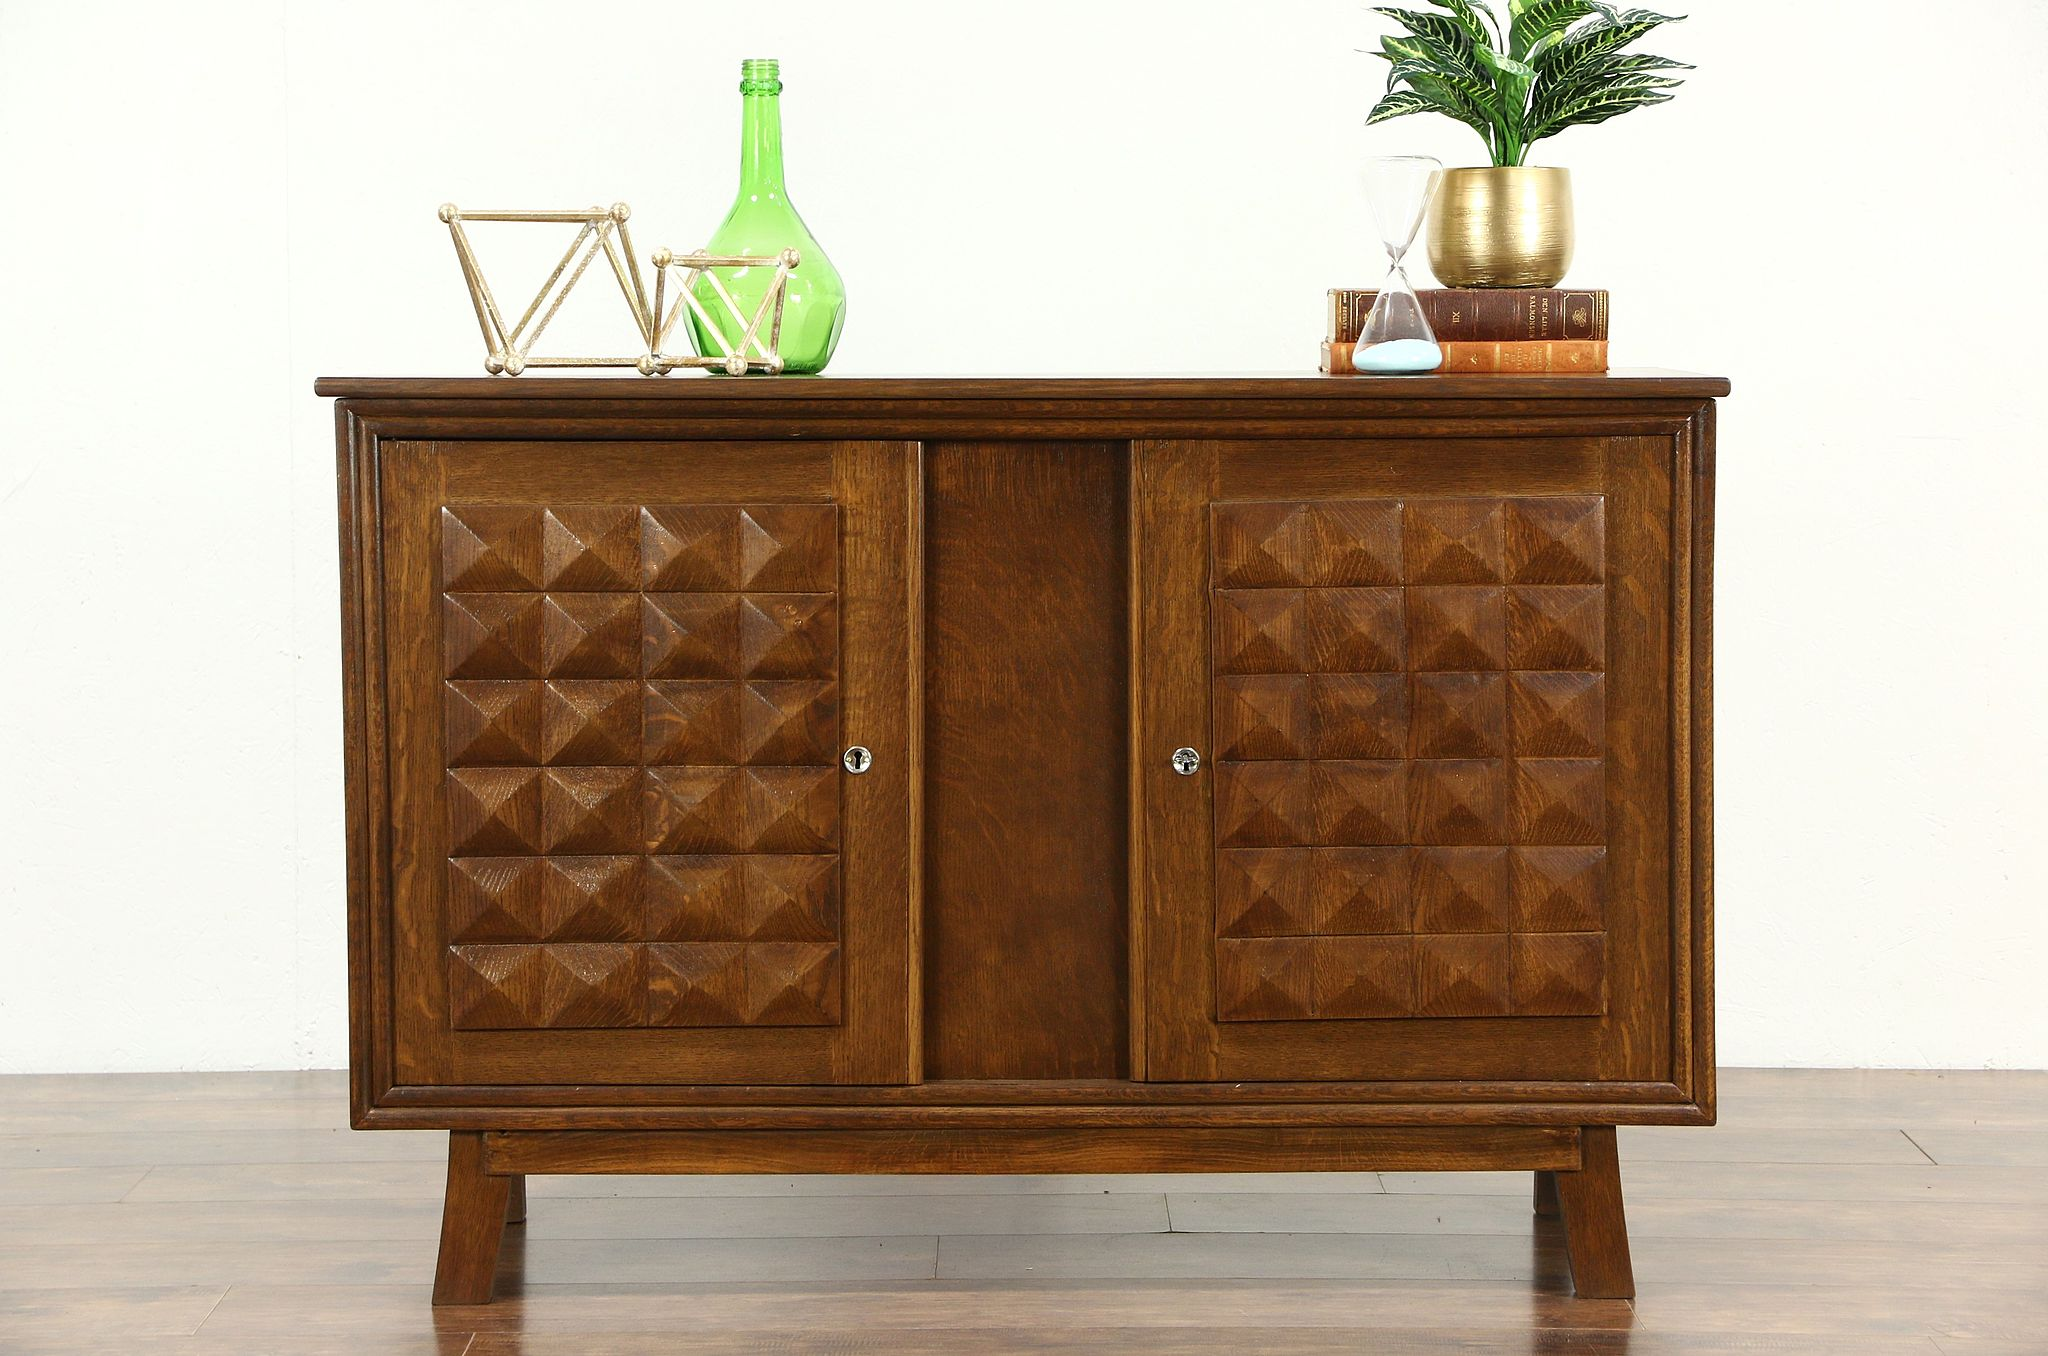 Hall Console Cabinet sold - midcentury modern scandinavian oak vintage sideboard, hall